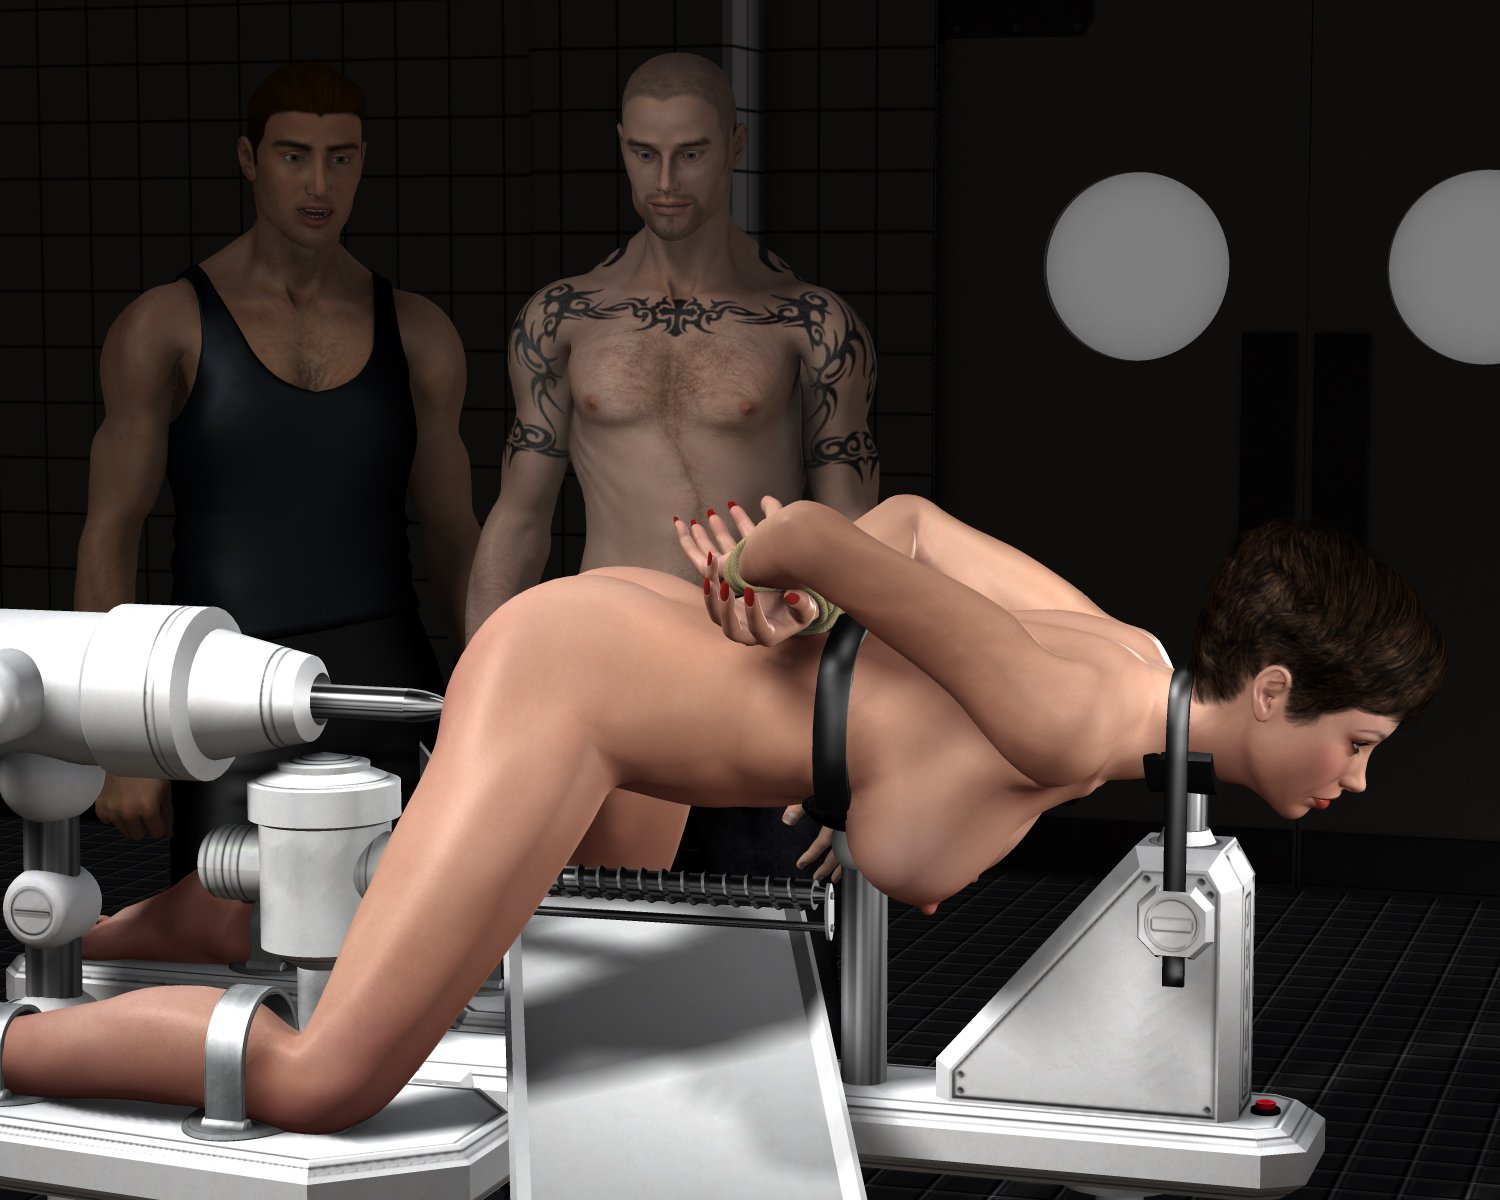 3d gay naked execution porn anime gallery